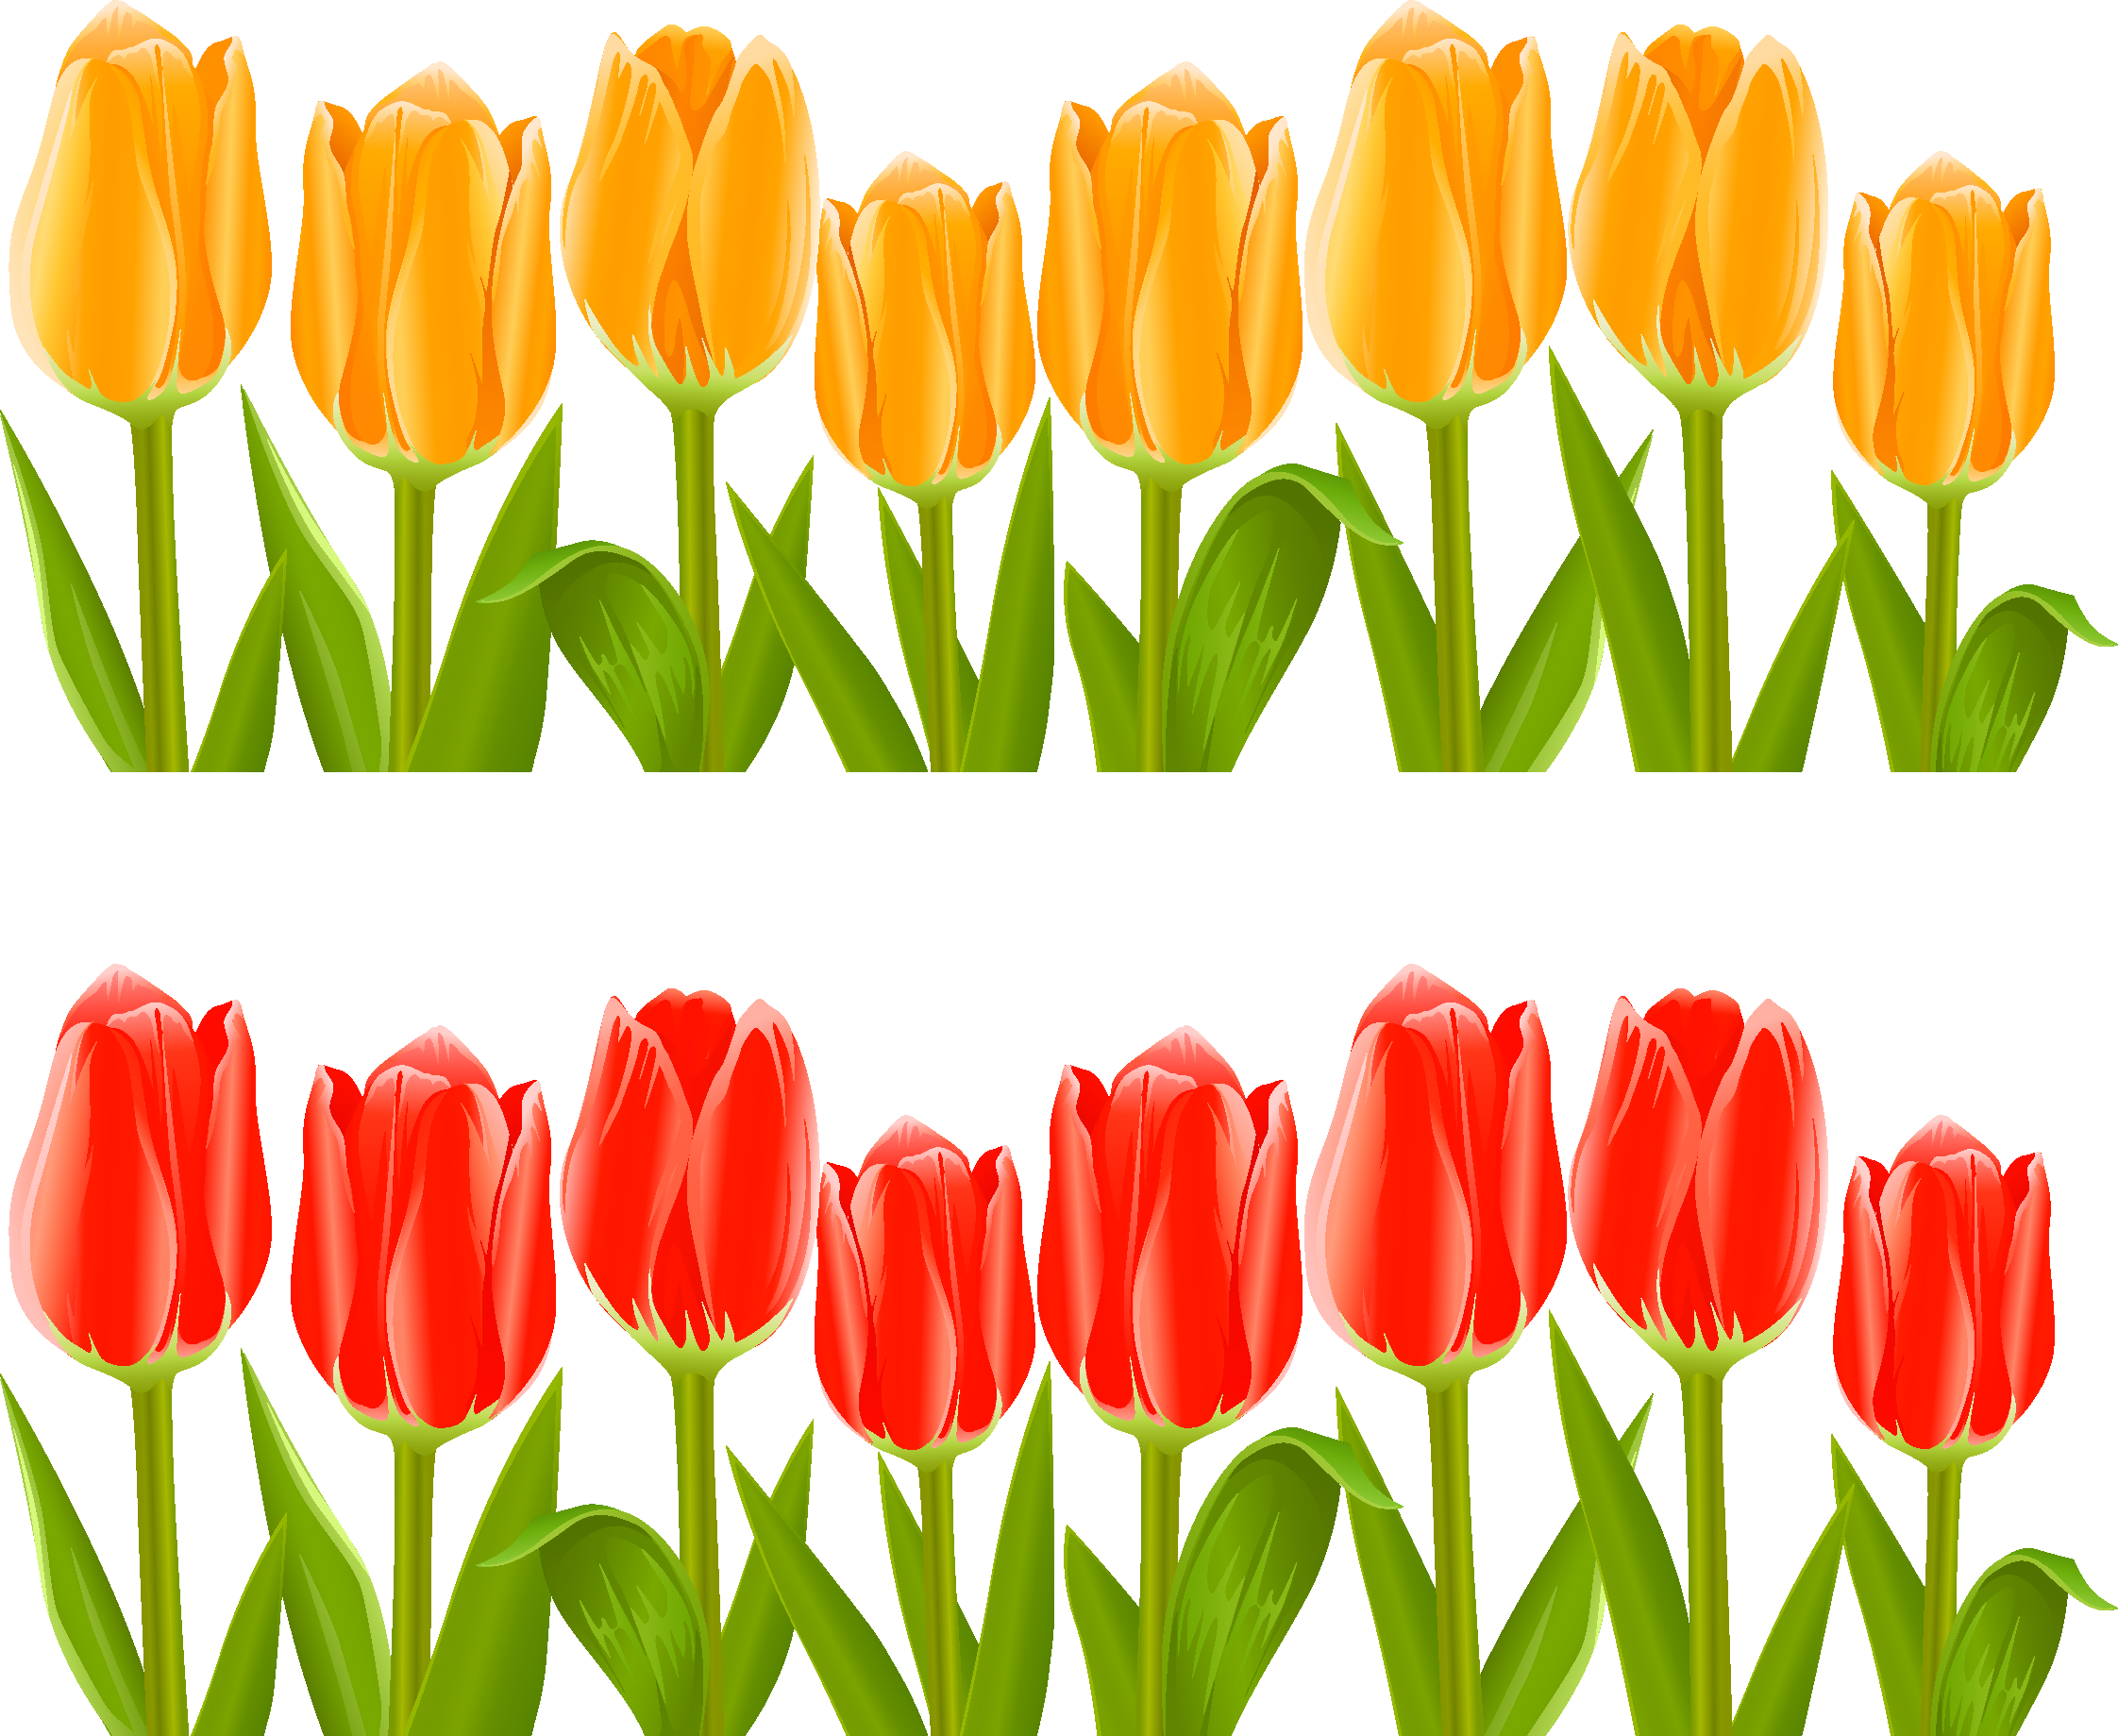 Flower in the garden clipart. X making web com